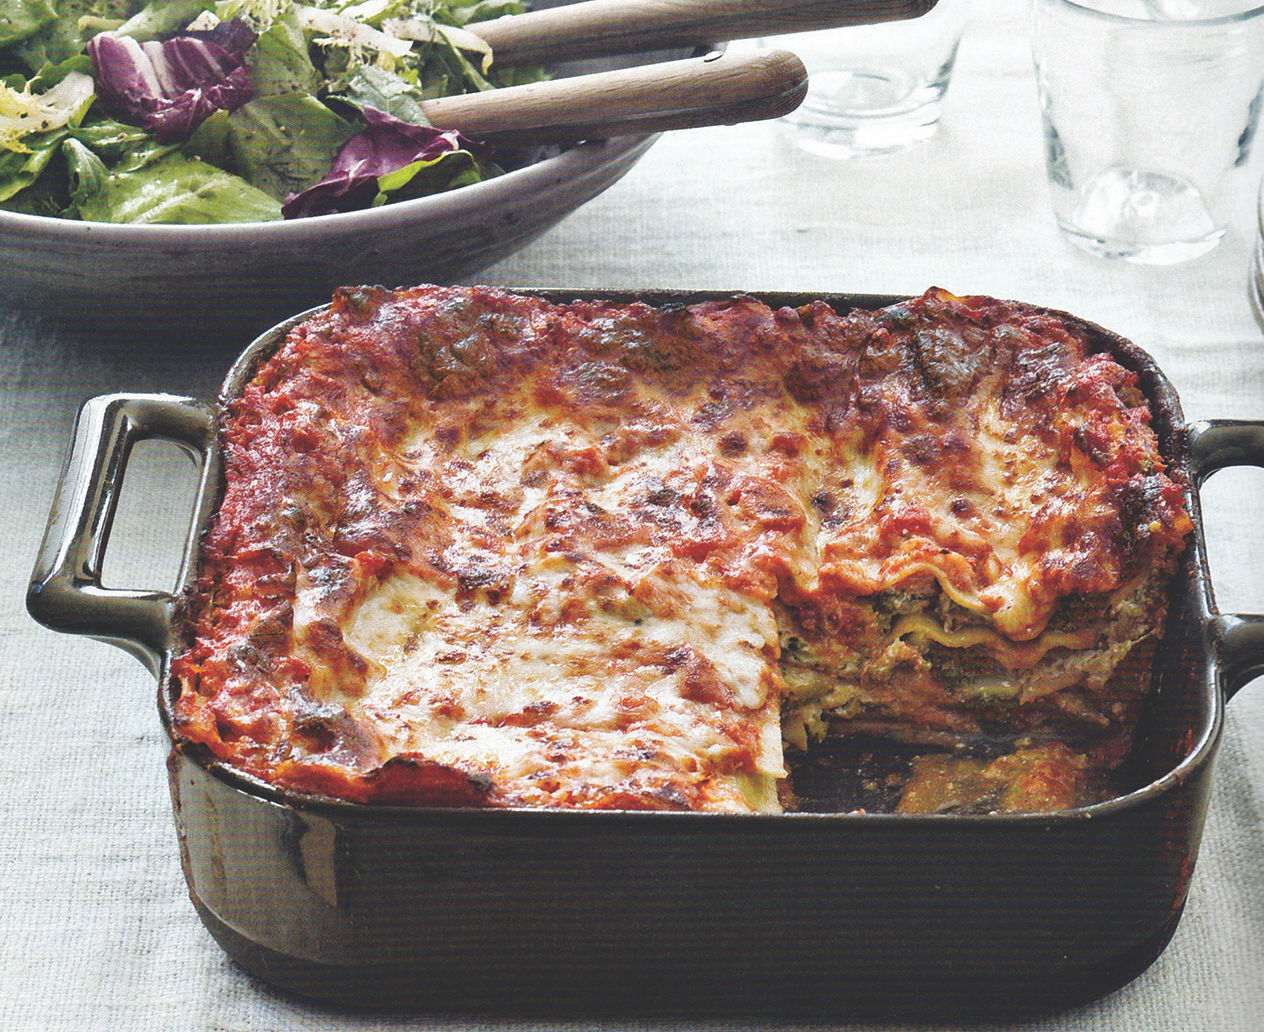 Hearty lasagna can feed holiday crowds